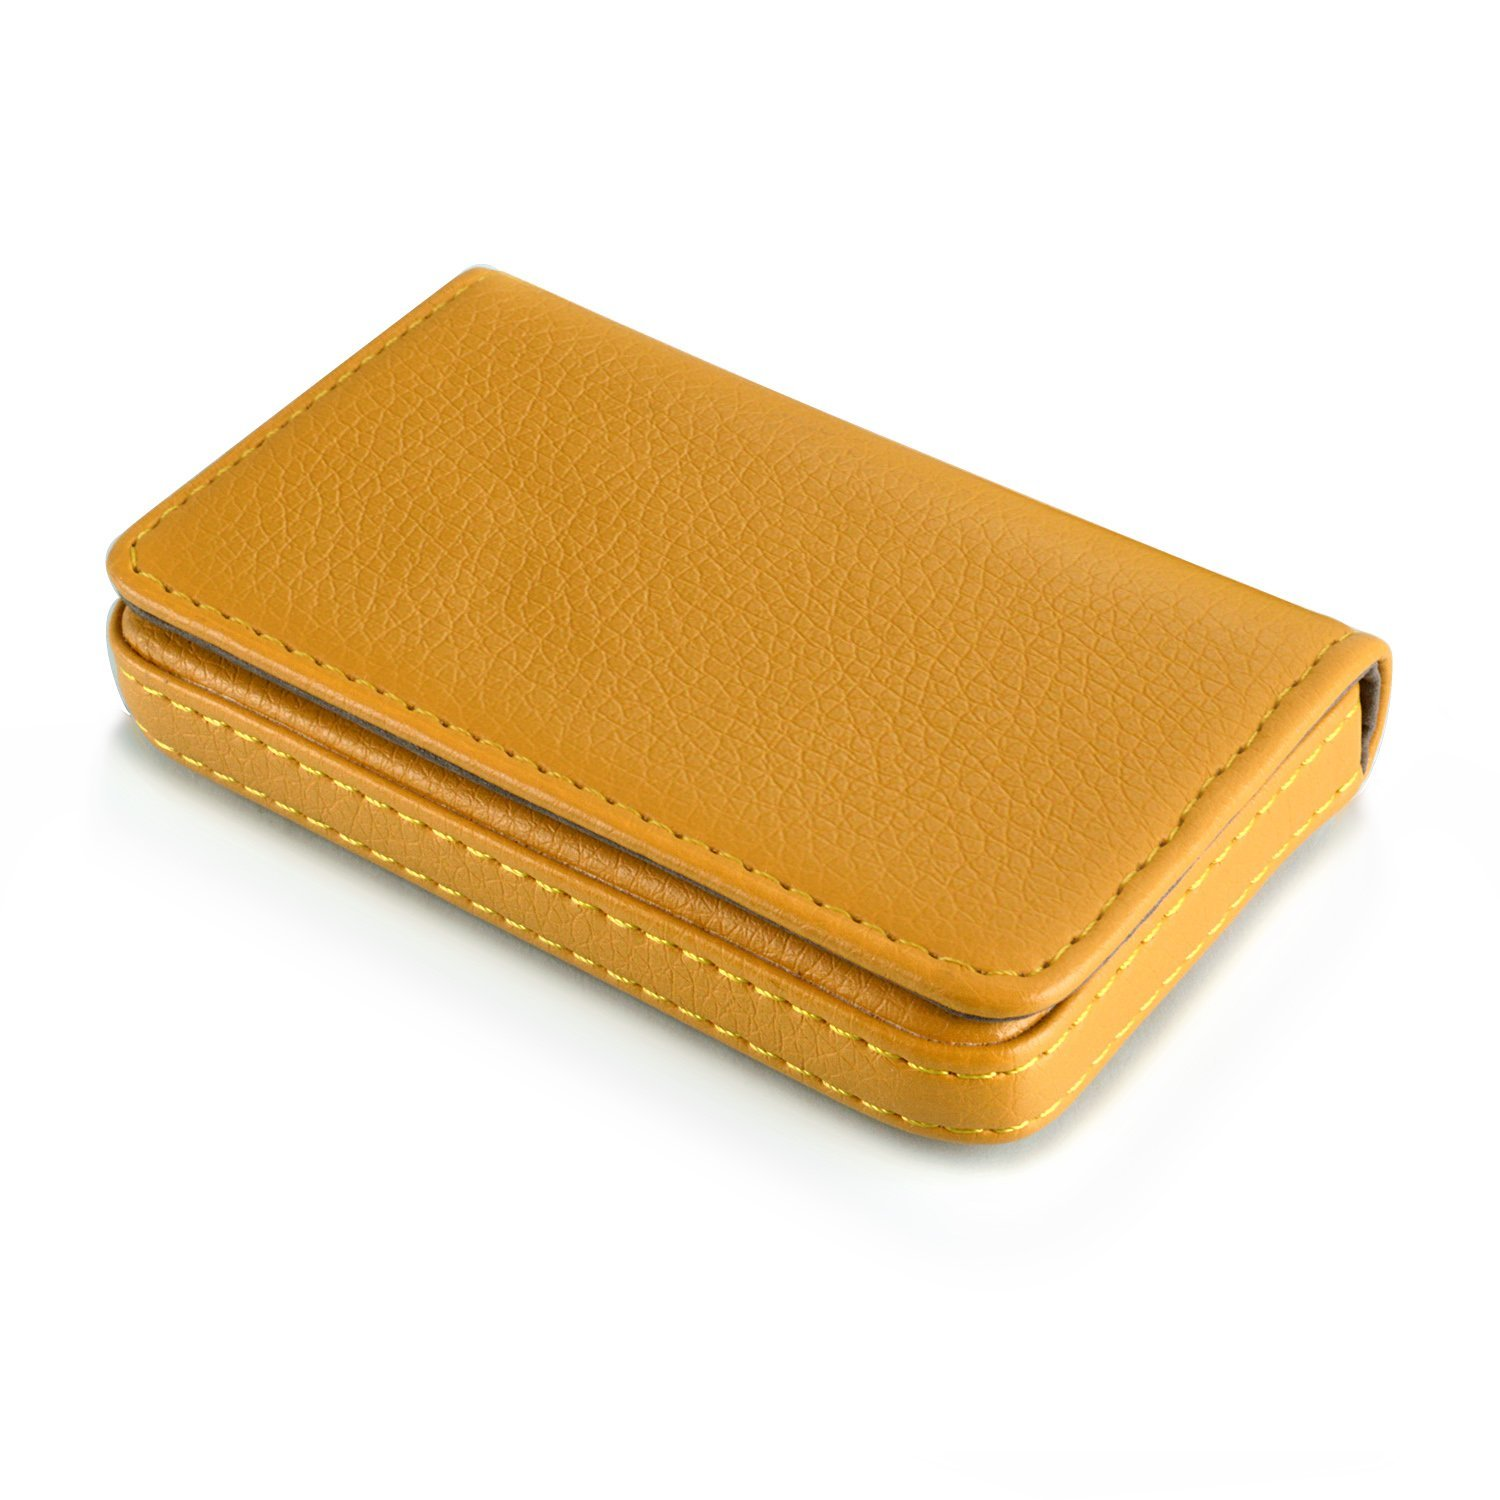 MaxGear Leather Business Name Card Holder/Wallet for Women or Men, Leather Business Card Case Flip Card Wallet for Business Cards, Credit Cards, Driver License, and ID Cards Full Yellow